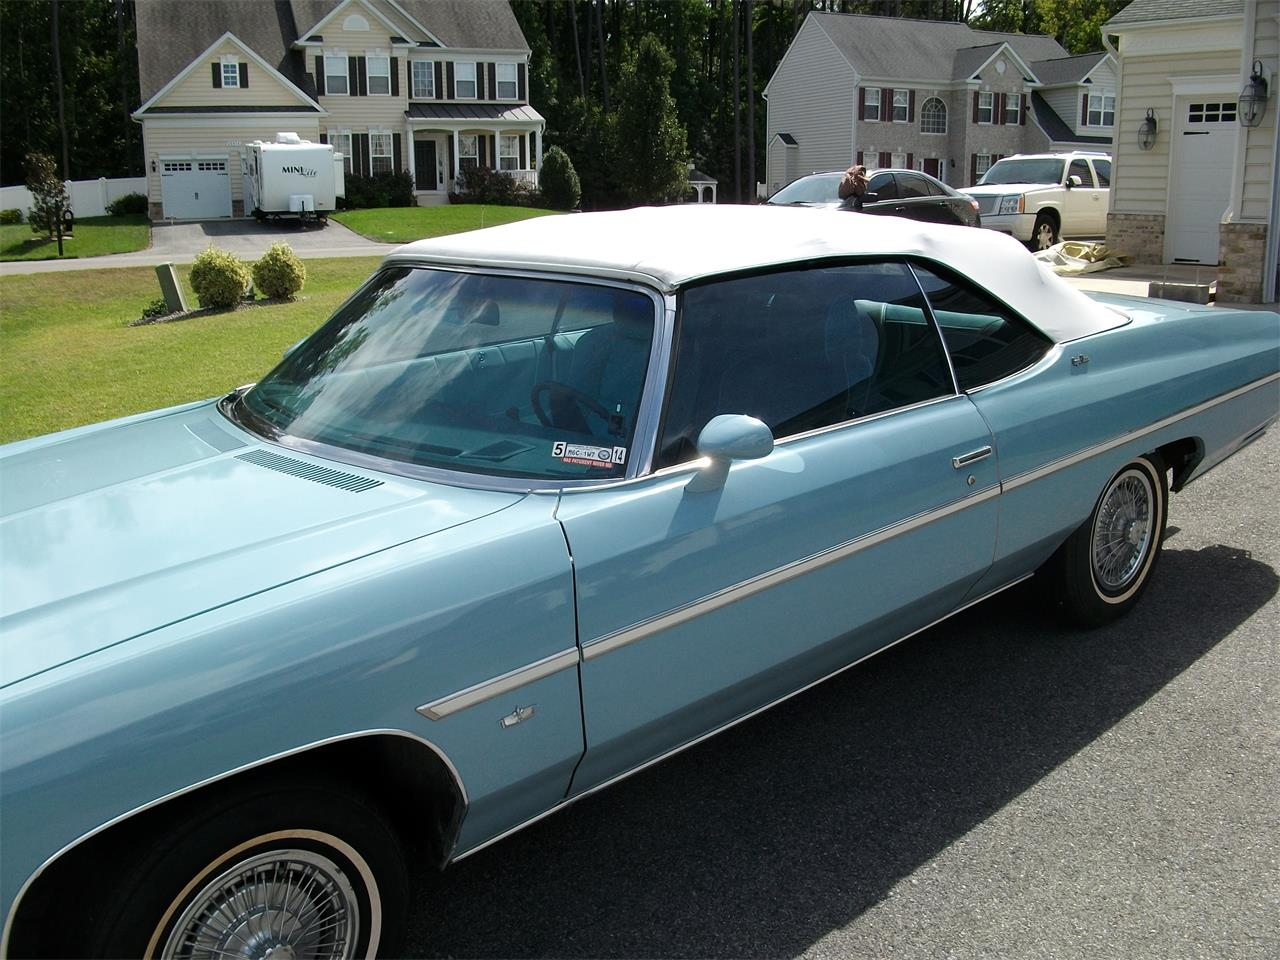 Large Picture of 1975 Caprice located in Great Mills Maryland - $20,000.00 Offered by a Private Seller - FF2X